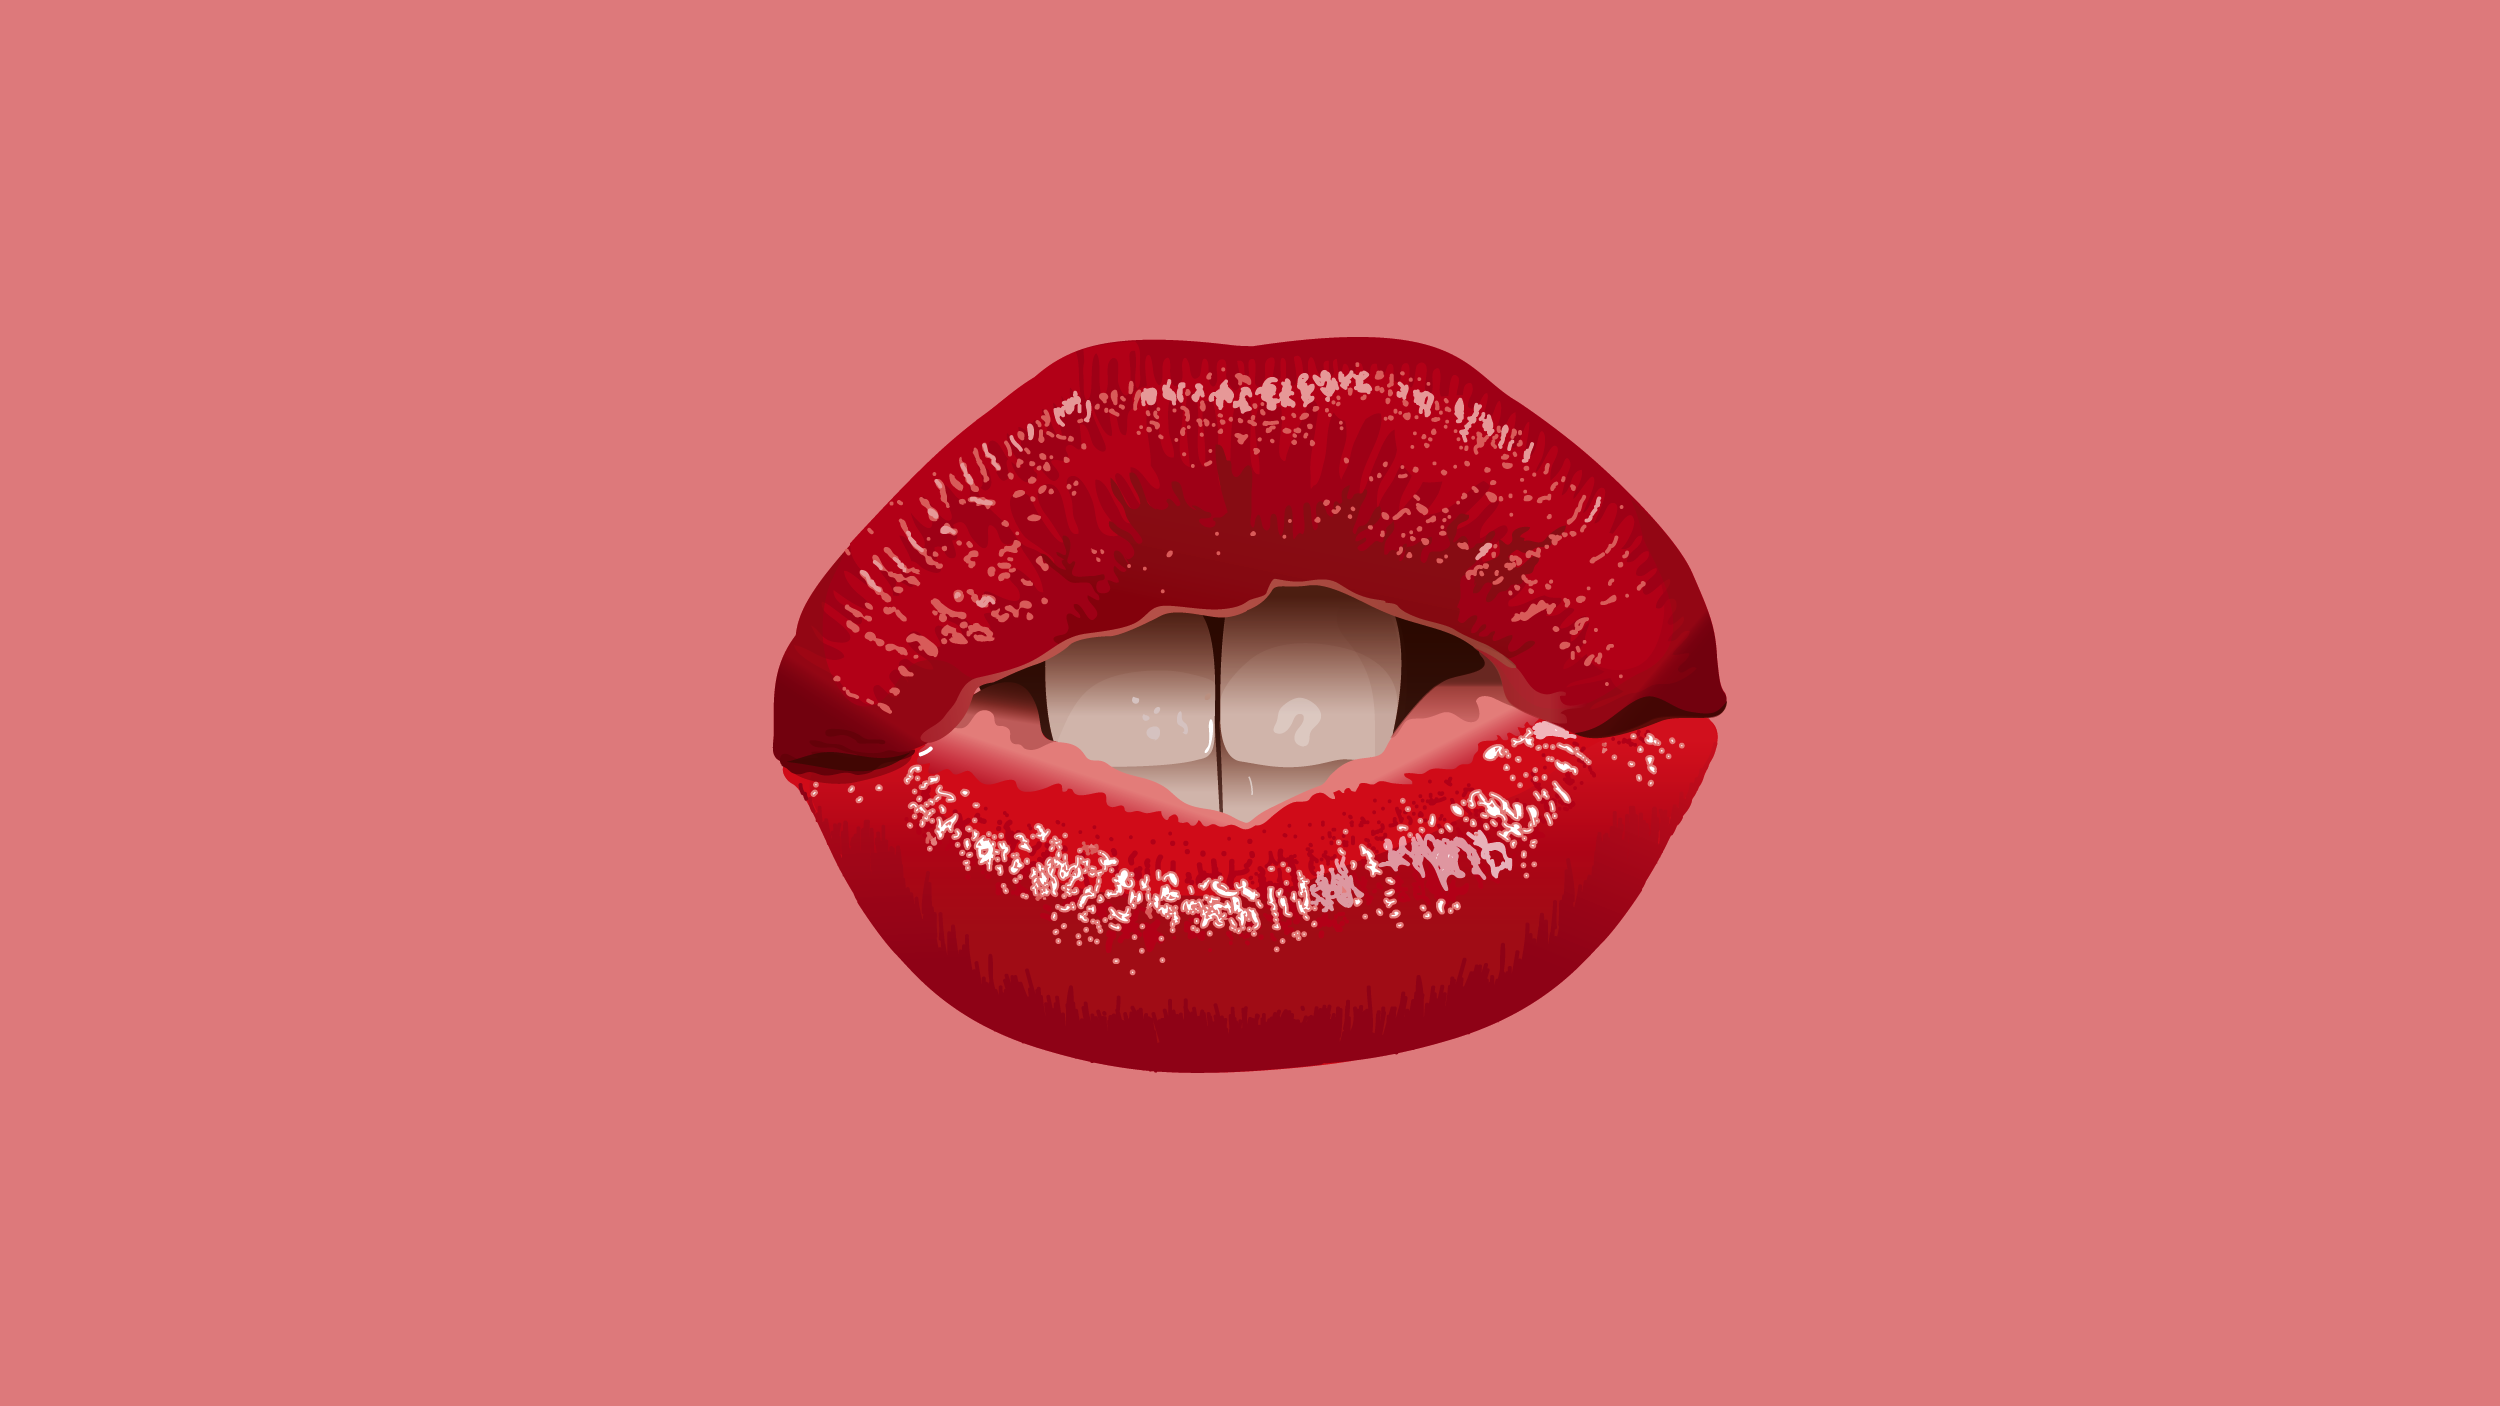 Lips_LipBite_Justin-Harder_01.png